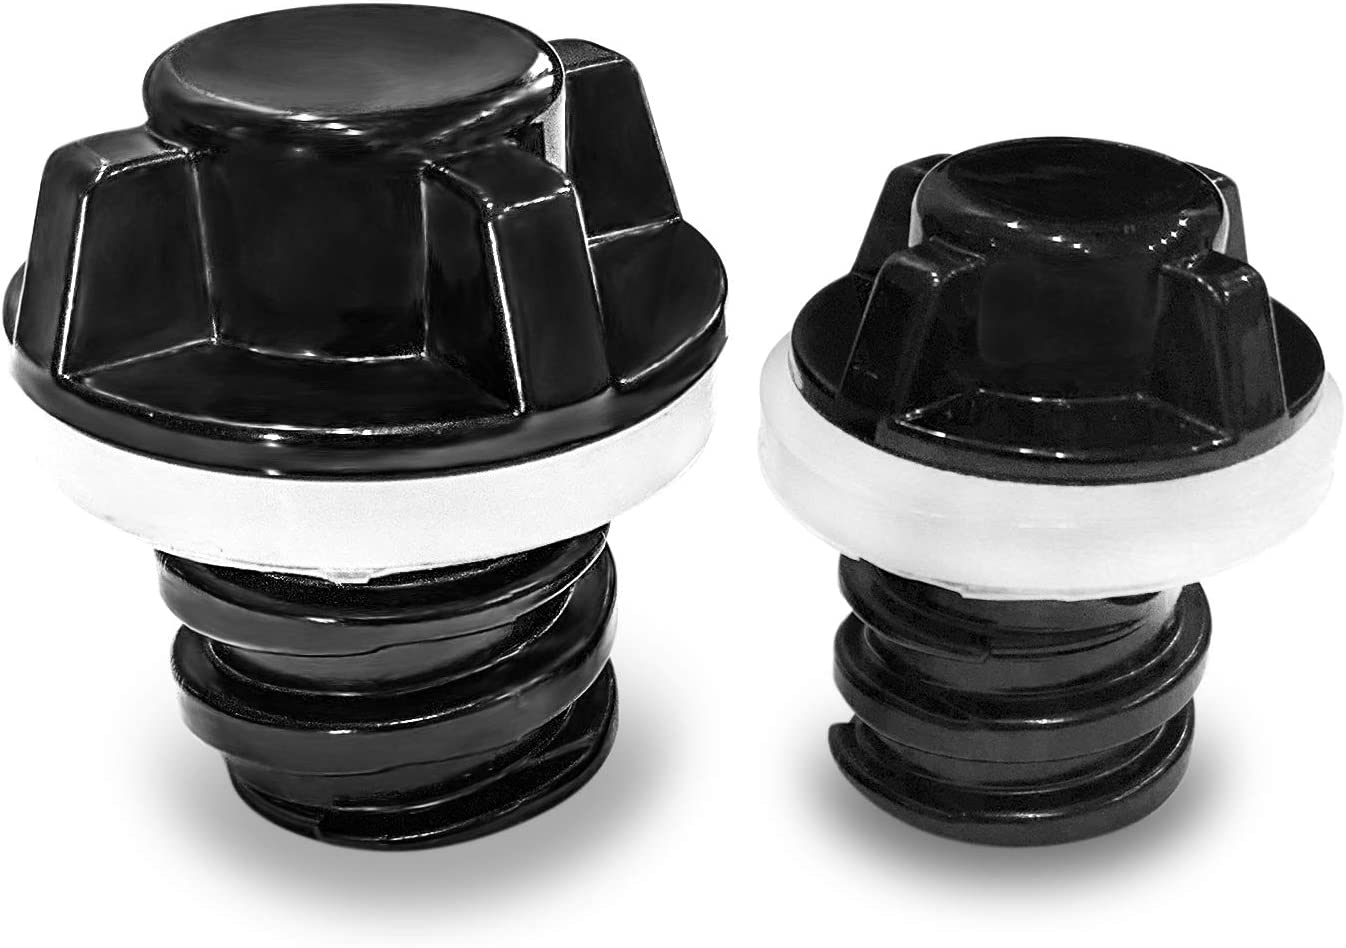 2x Drain Plugs Black Fit for RTIC Coolers Refrigerator Accessories